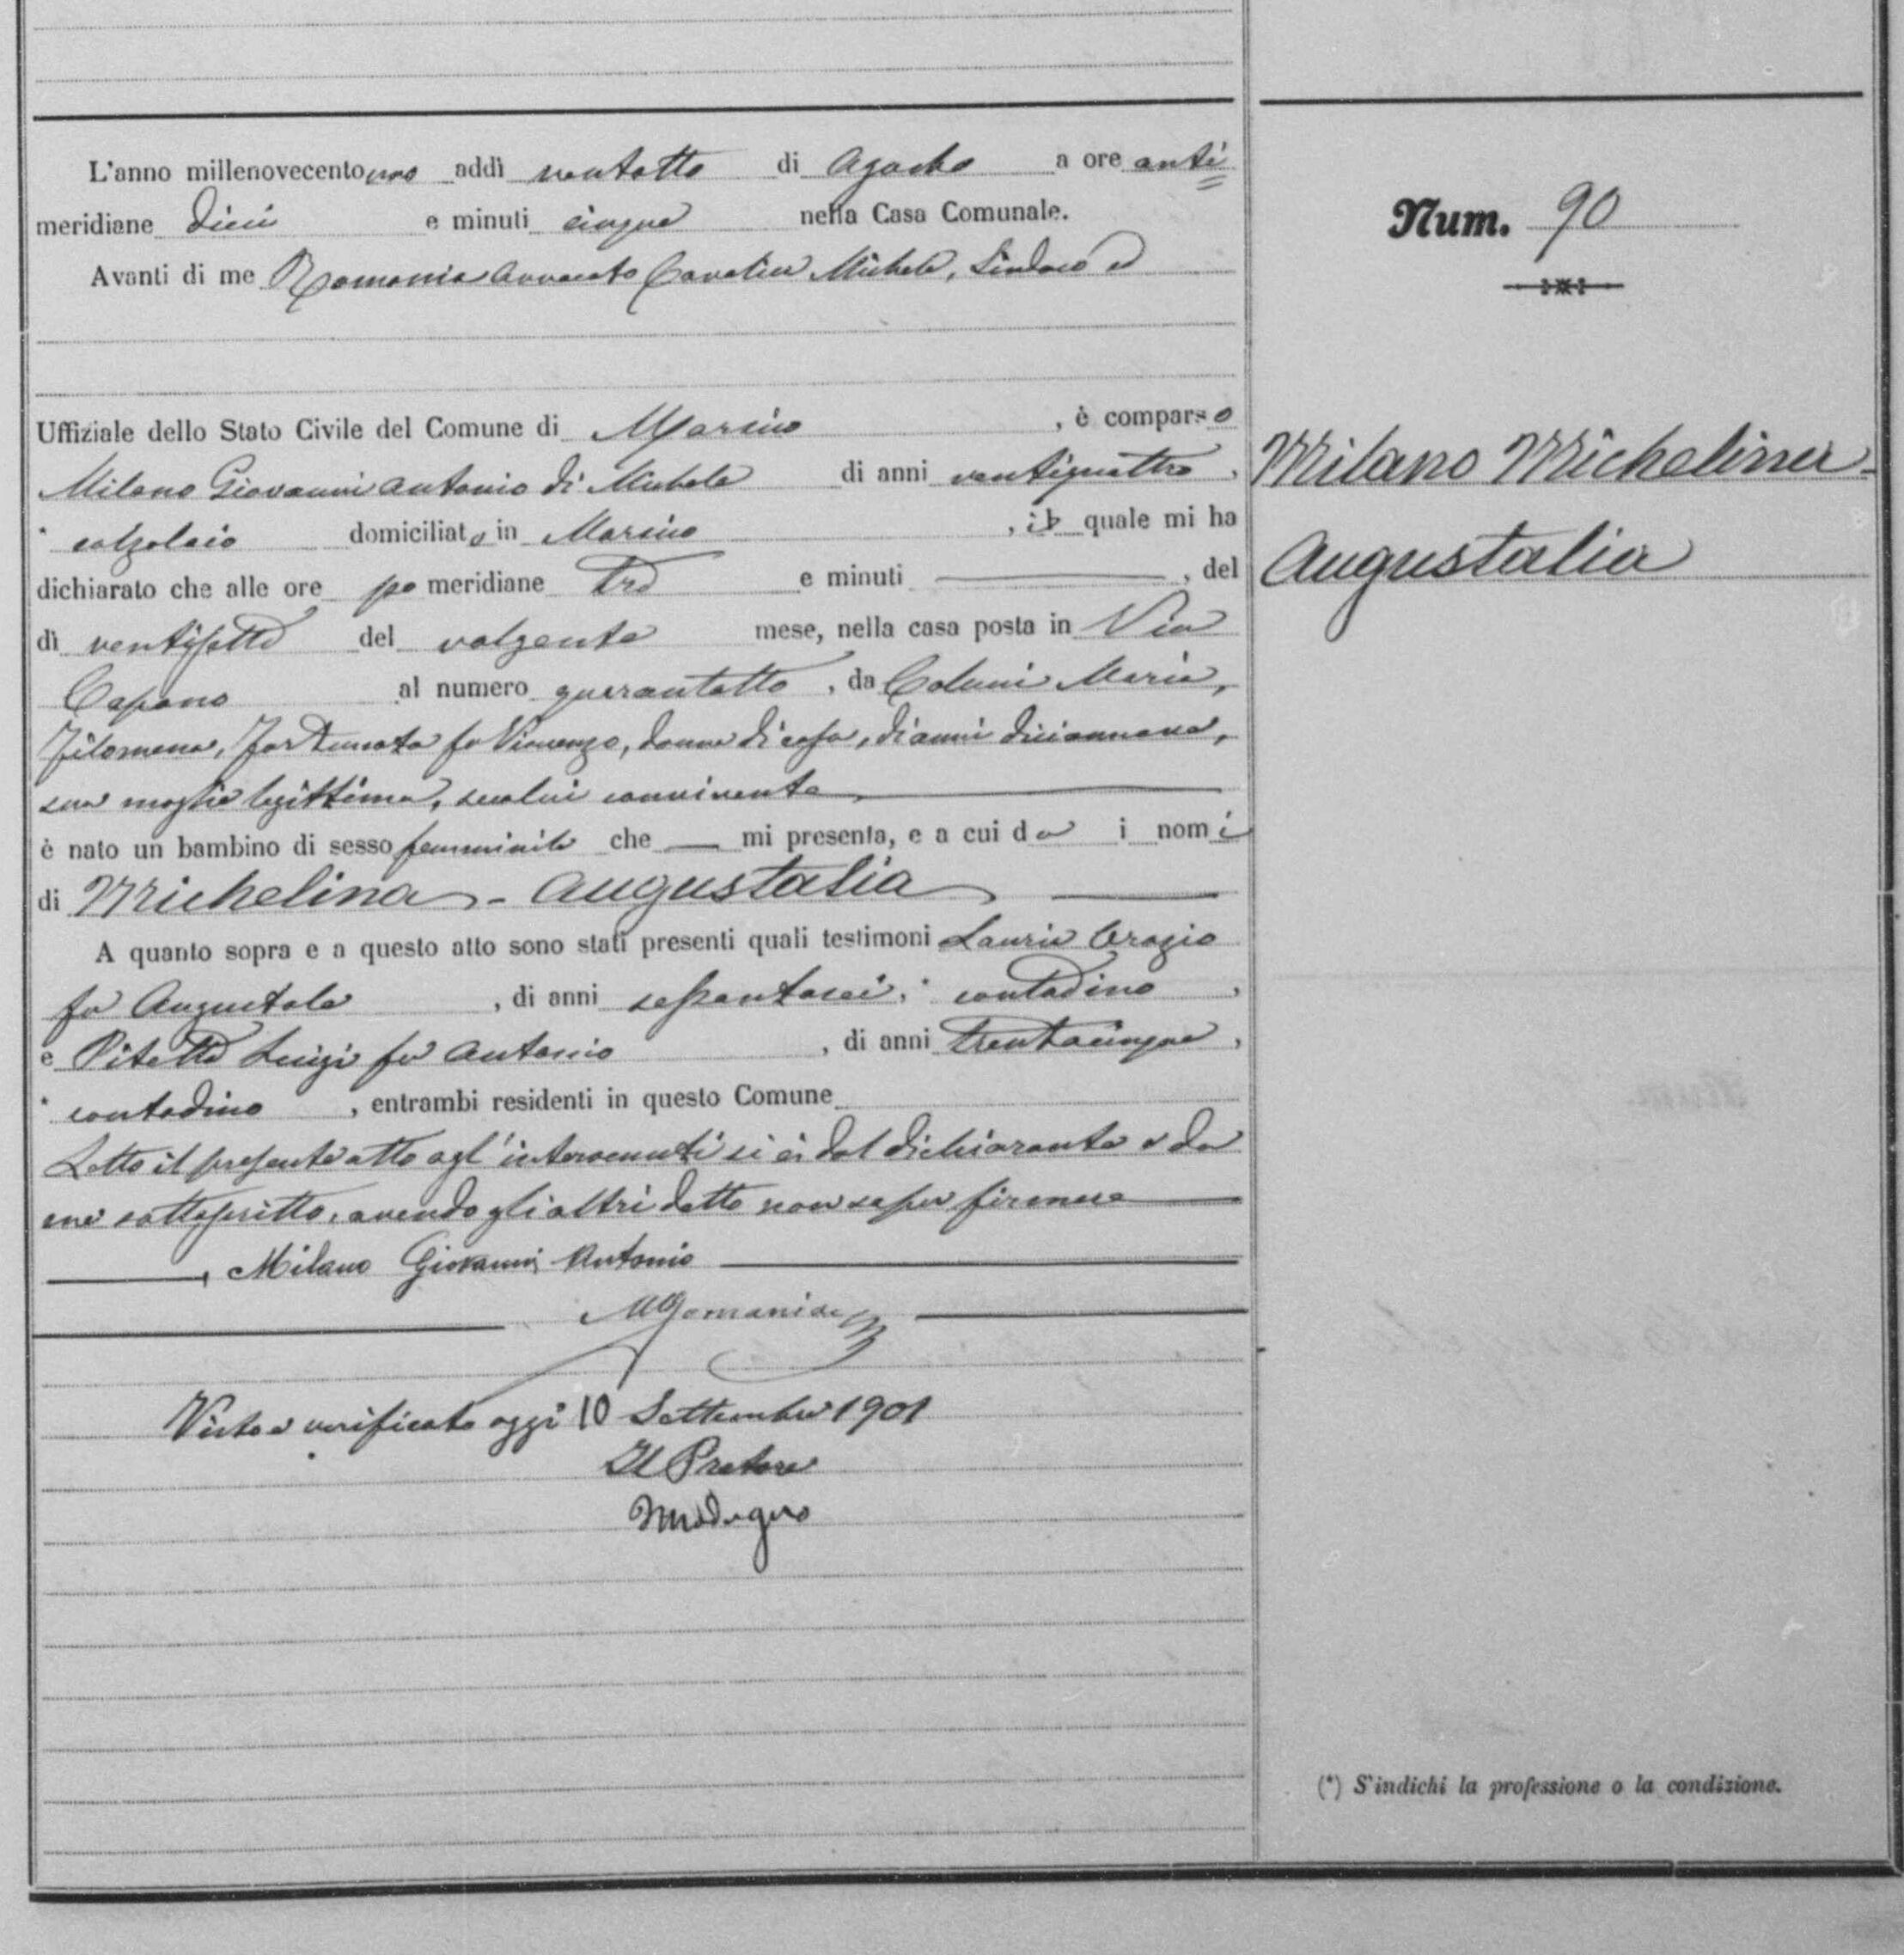 Miilano Michelena birth record Aug 27 1901.jpg